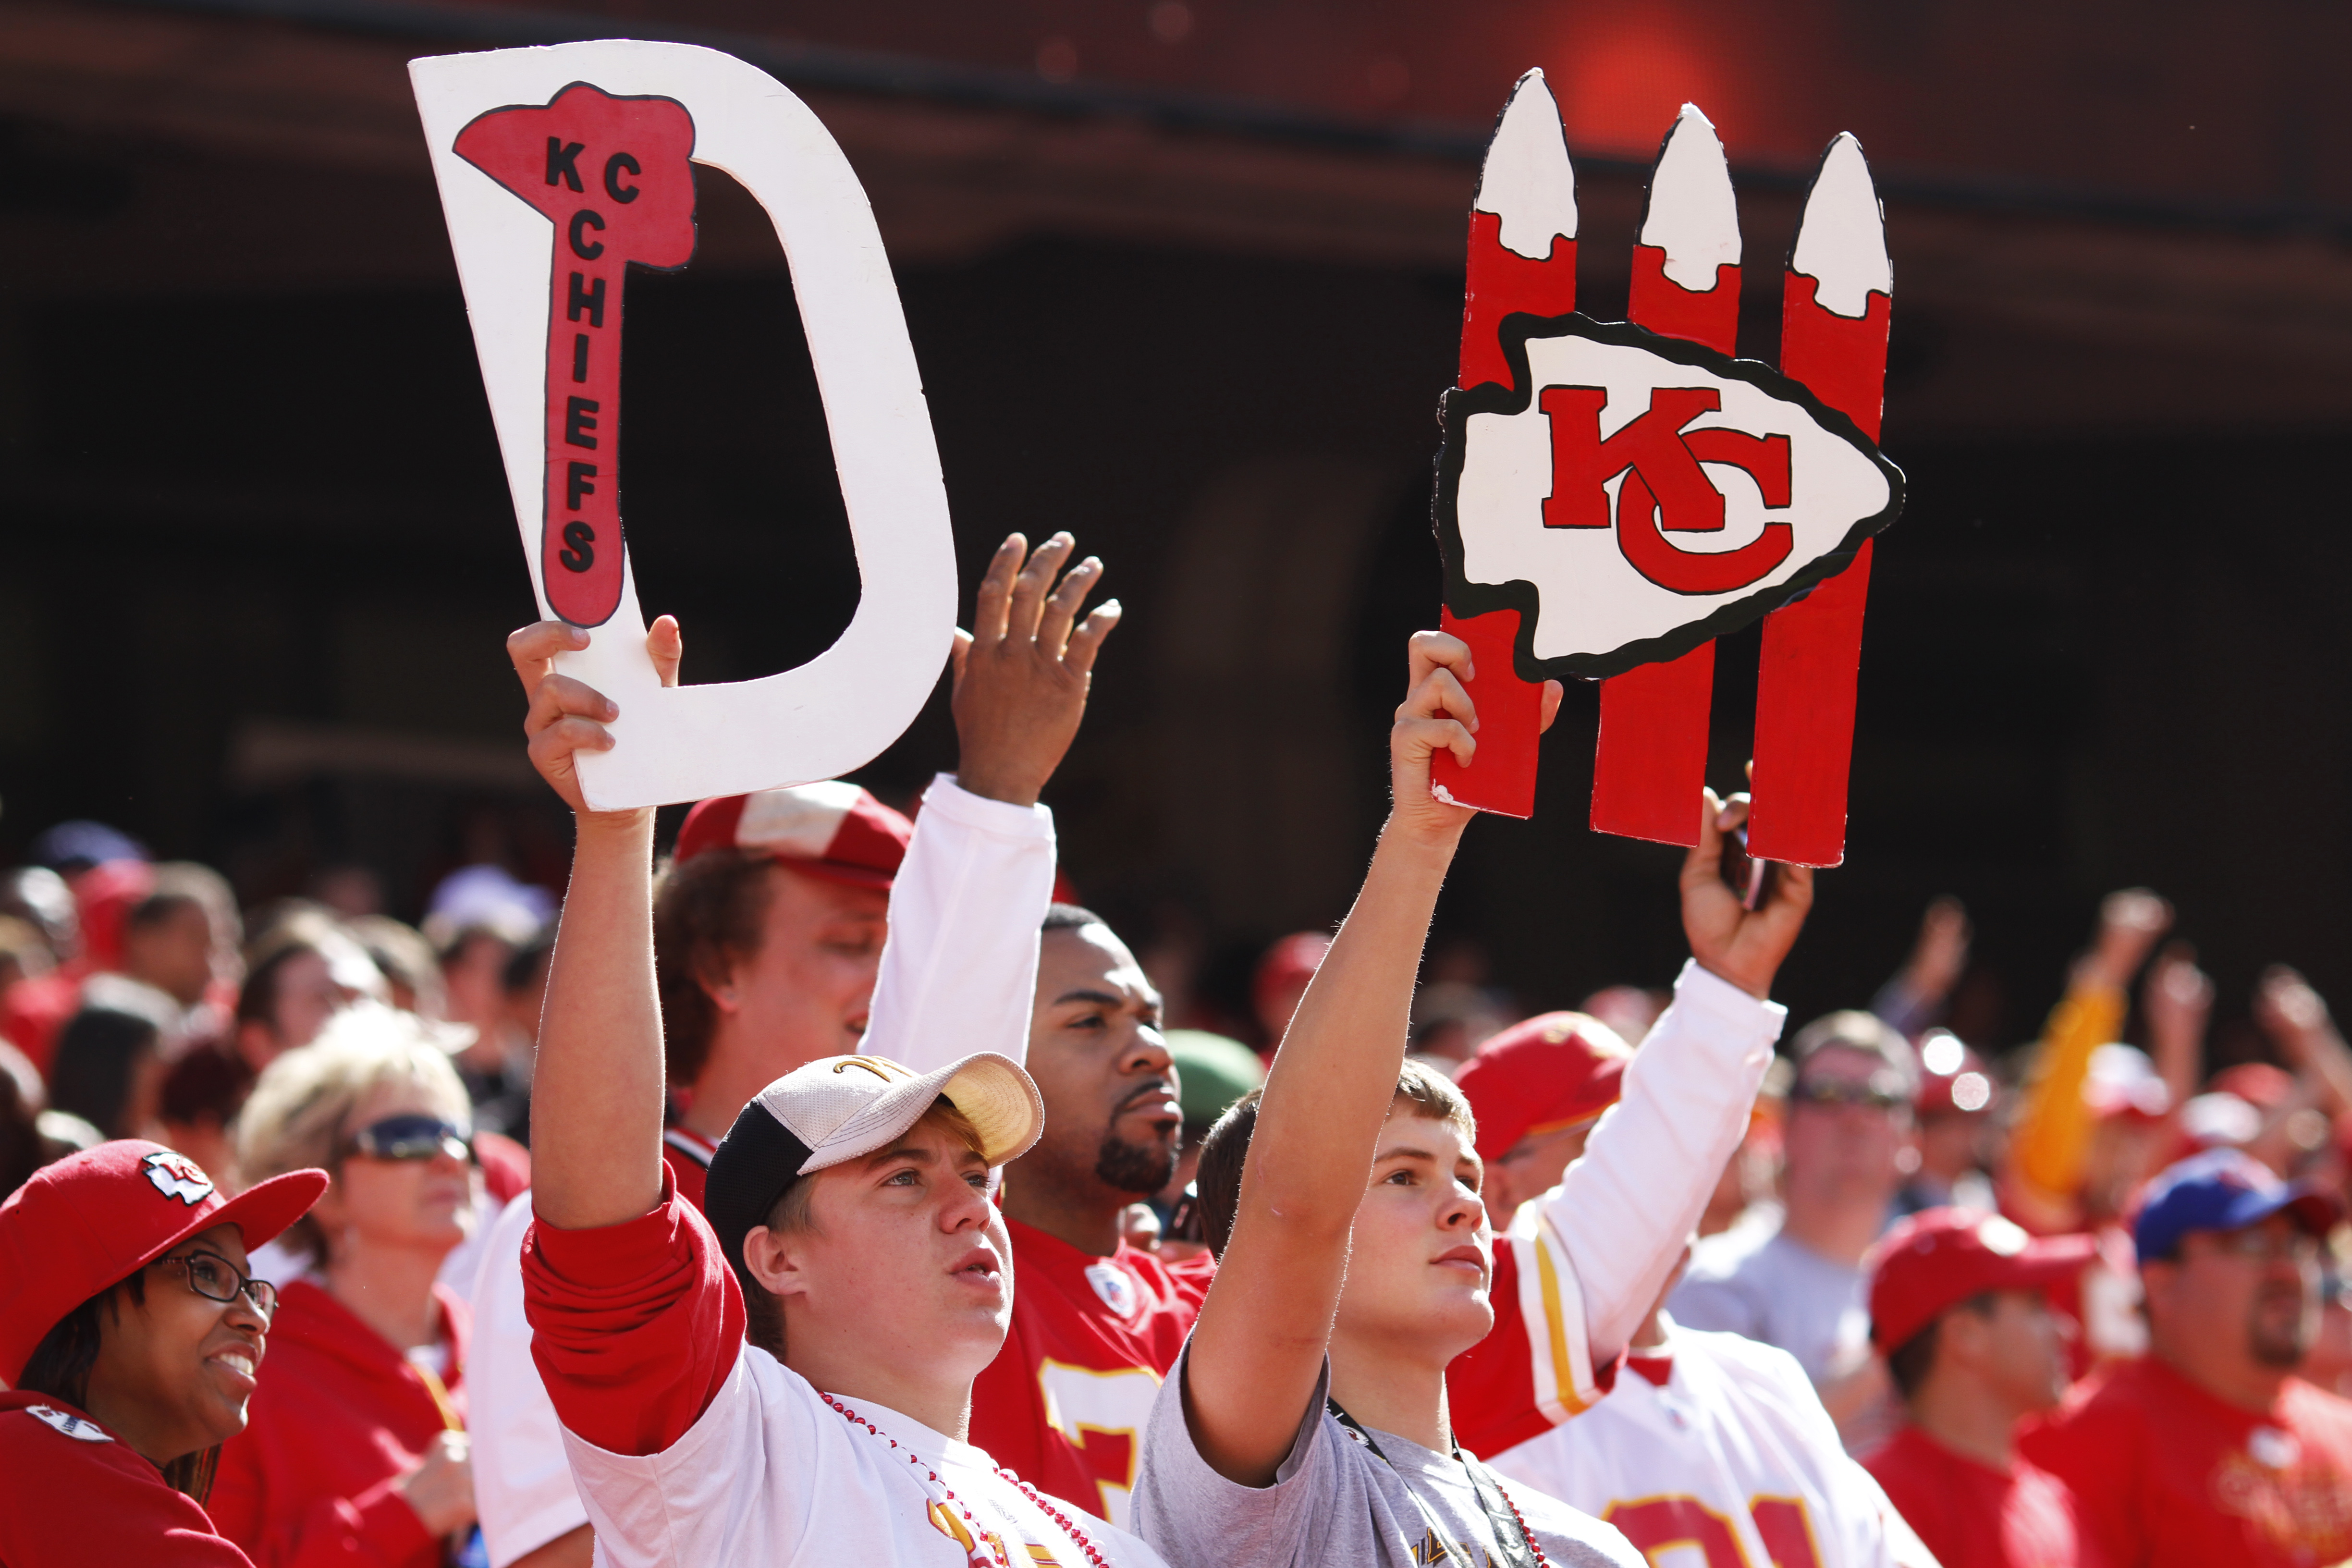 KANSAS CITY, MO - SEPTEMBER 26: A pair of Kansas City Chiefs fans look on during the game against the San Francisco 49ers at Arrowhead Stadium on September 26, 2010 in Kansas City, Missouri. The Chiefs won 31-10. (Photo by Joe Robbins/Getty Images)